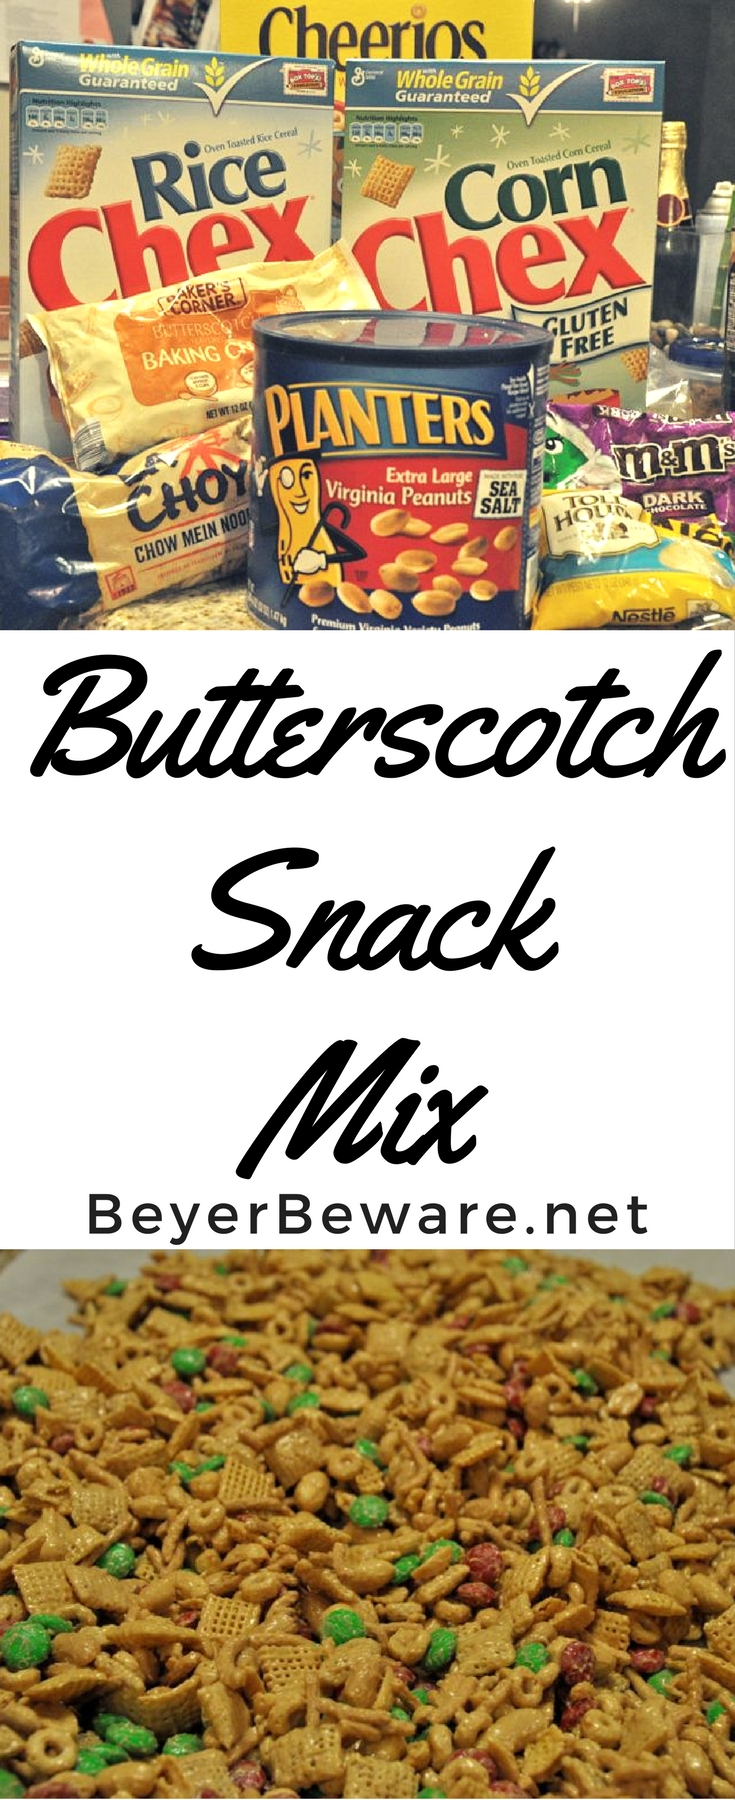 Butterscotch Snack Mix is the sweet and salty combinations of Chex and Cheerio cereasl, peanuts, and candy covered in butterscotch and peanut butter coating. #SnackMix #PeanutButter #Snacks #ChexMix